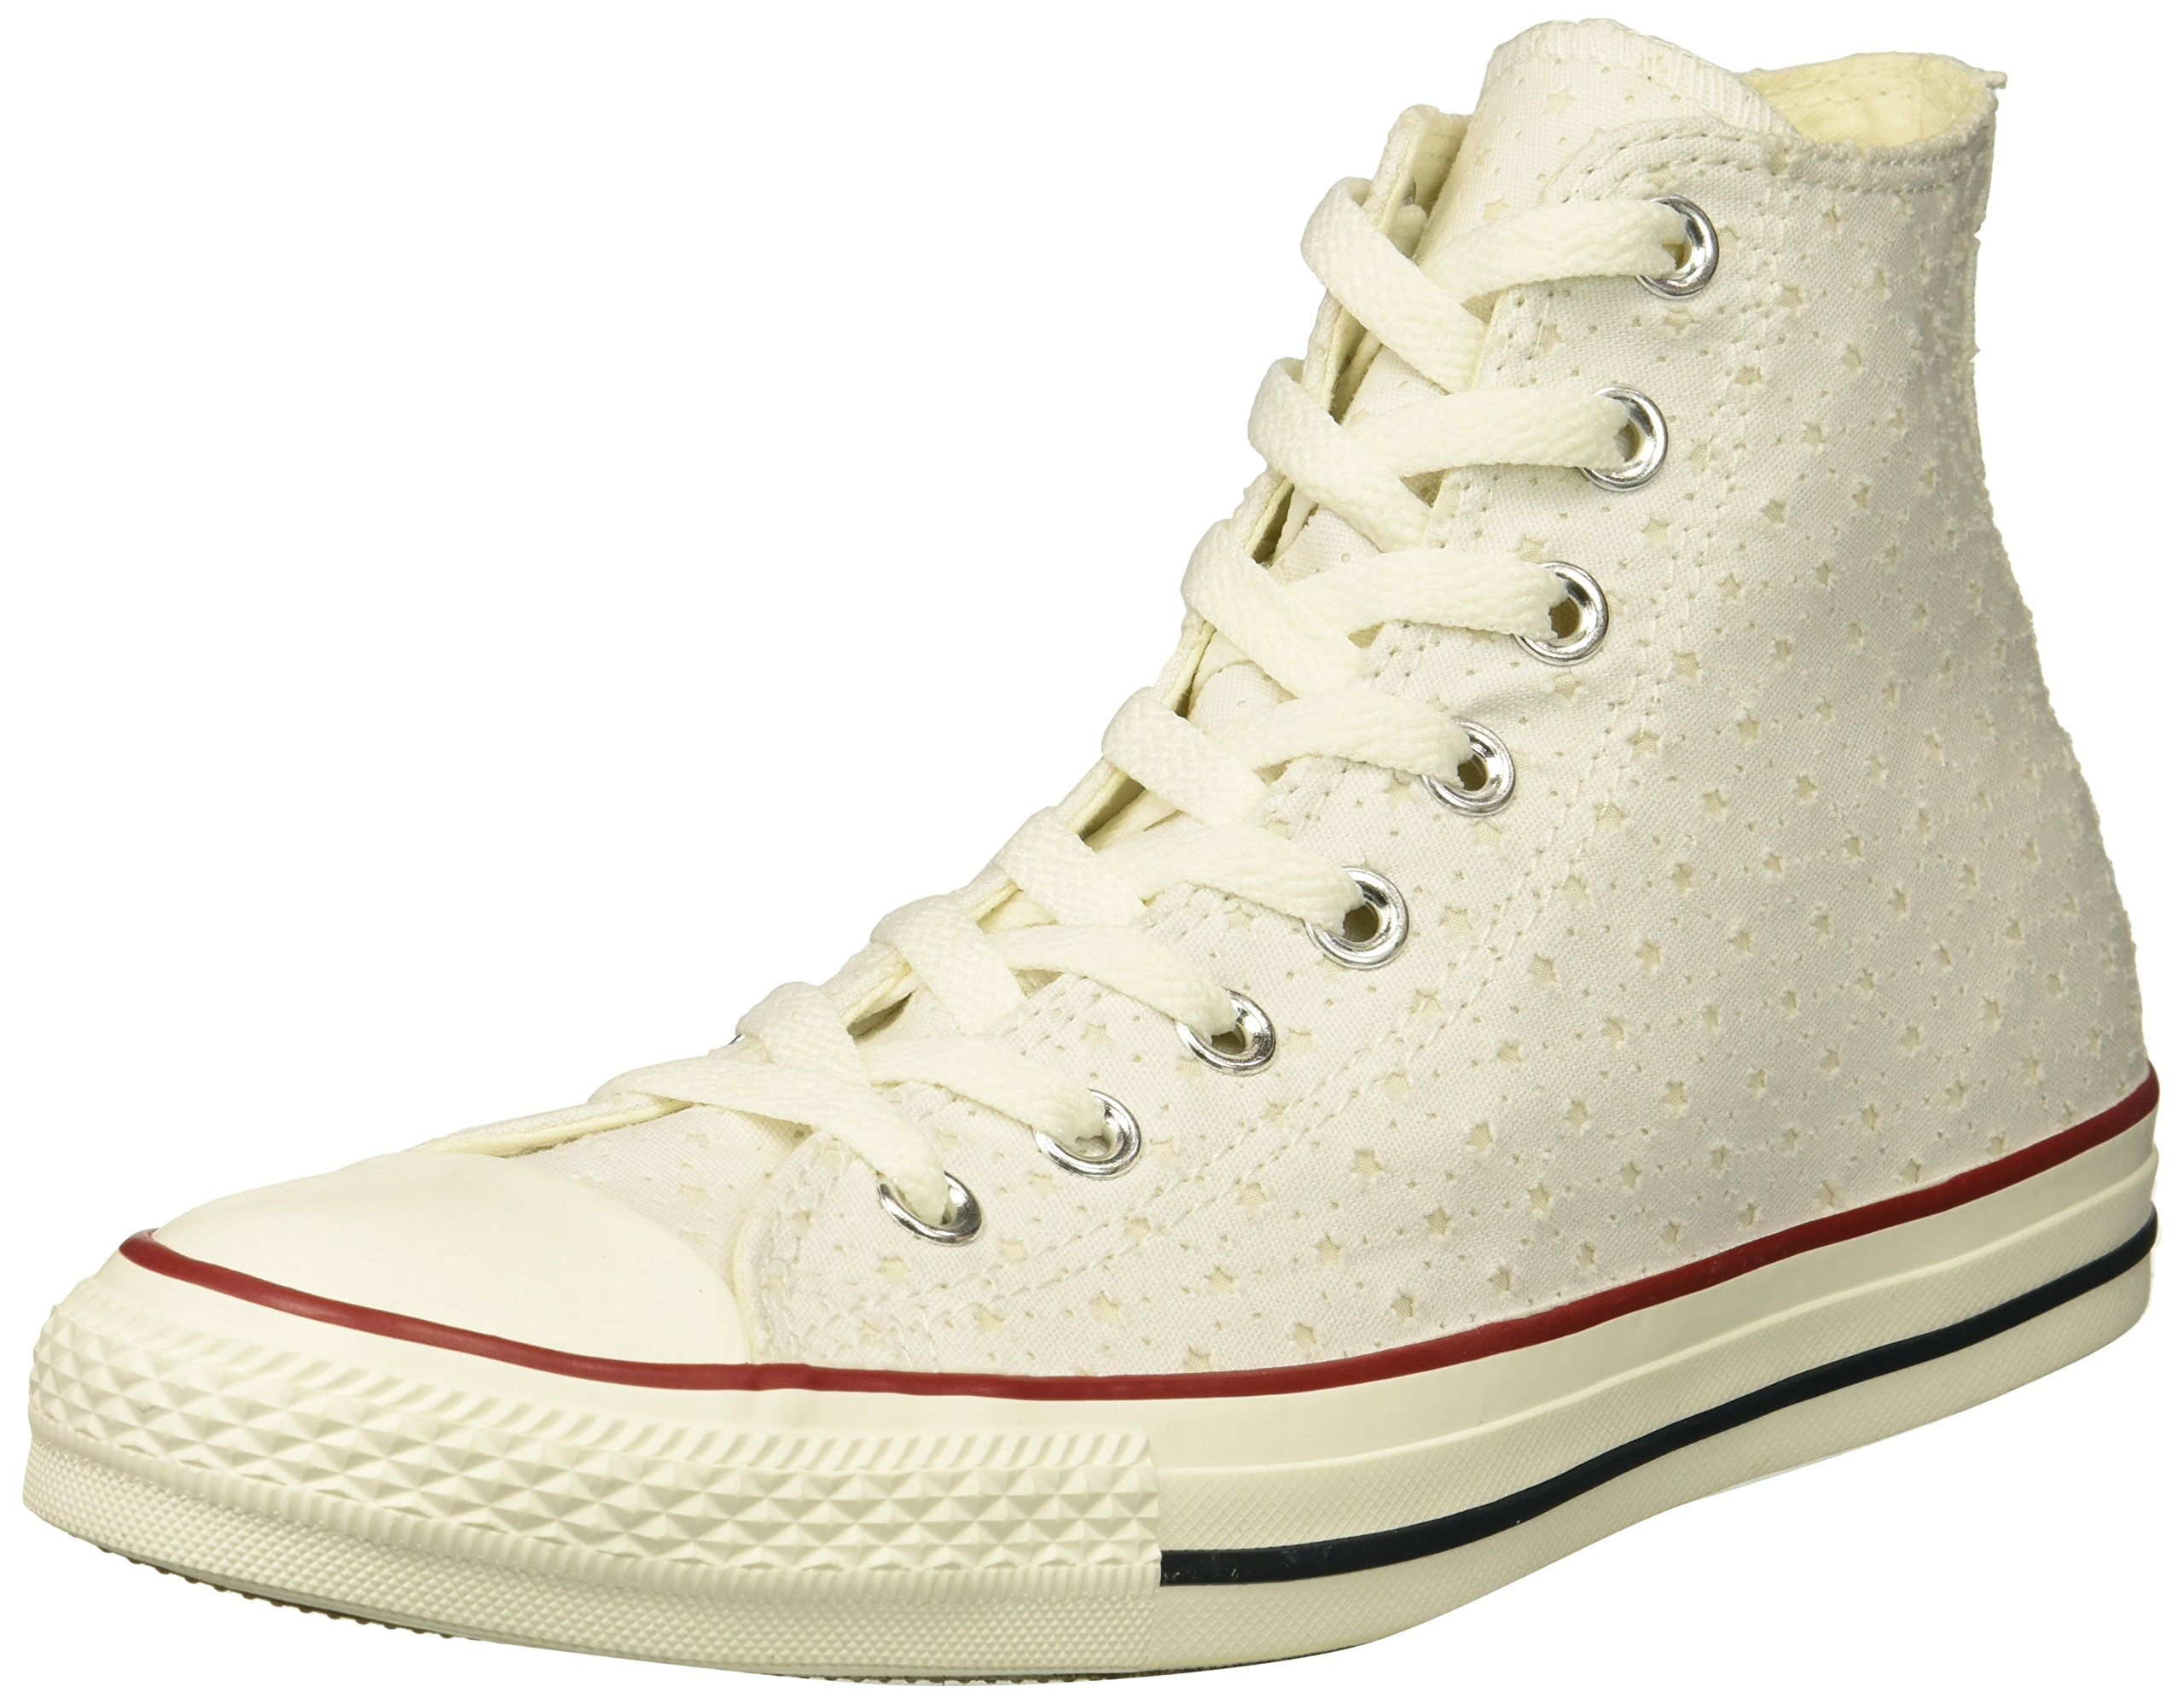 67e7605d0961 Converse Women s Chuck Taylor Perforated Stars High Top Sneaker  White Garnet Athletic Navy 8.5